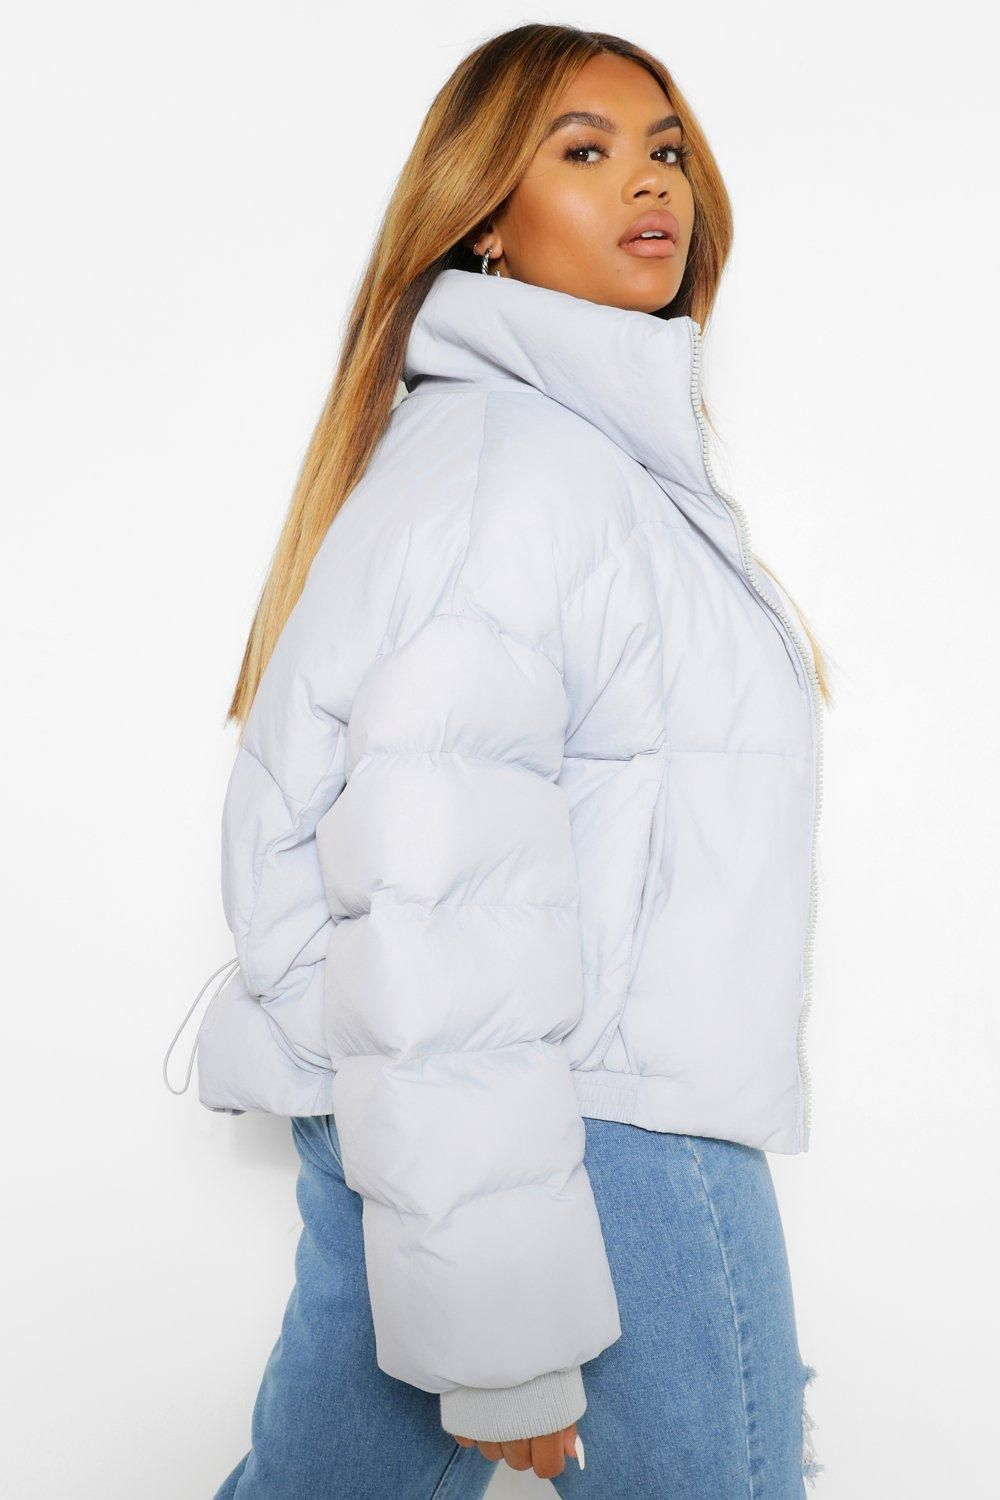 Plus Funnel Neck Cropped Puffer Jacket Boohoo Cropped Puffer Jacket Women S Puffer Coats Puffer Coat Outfit [ 1500 x 1000 Pixel ]